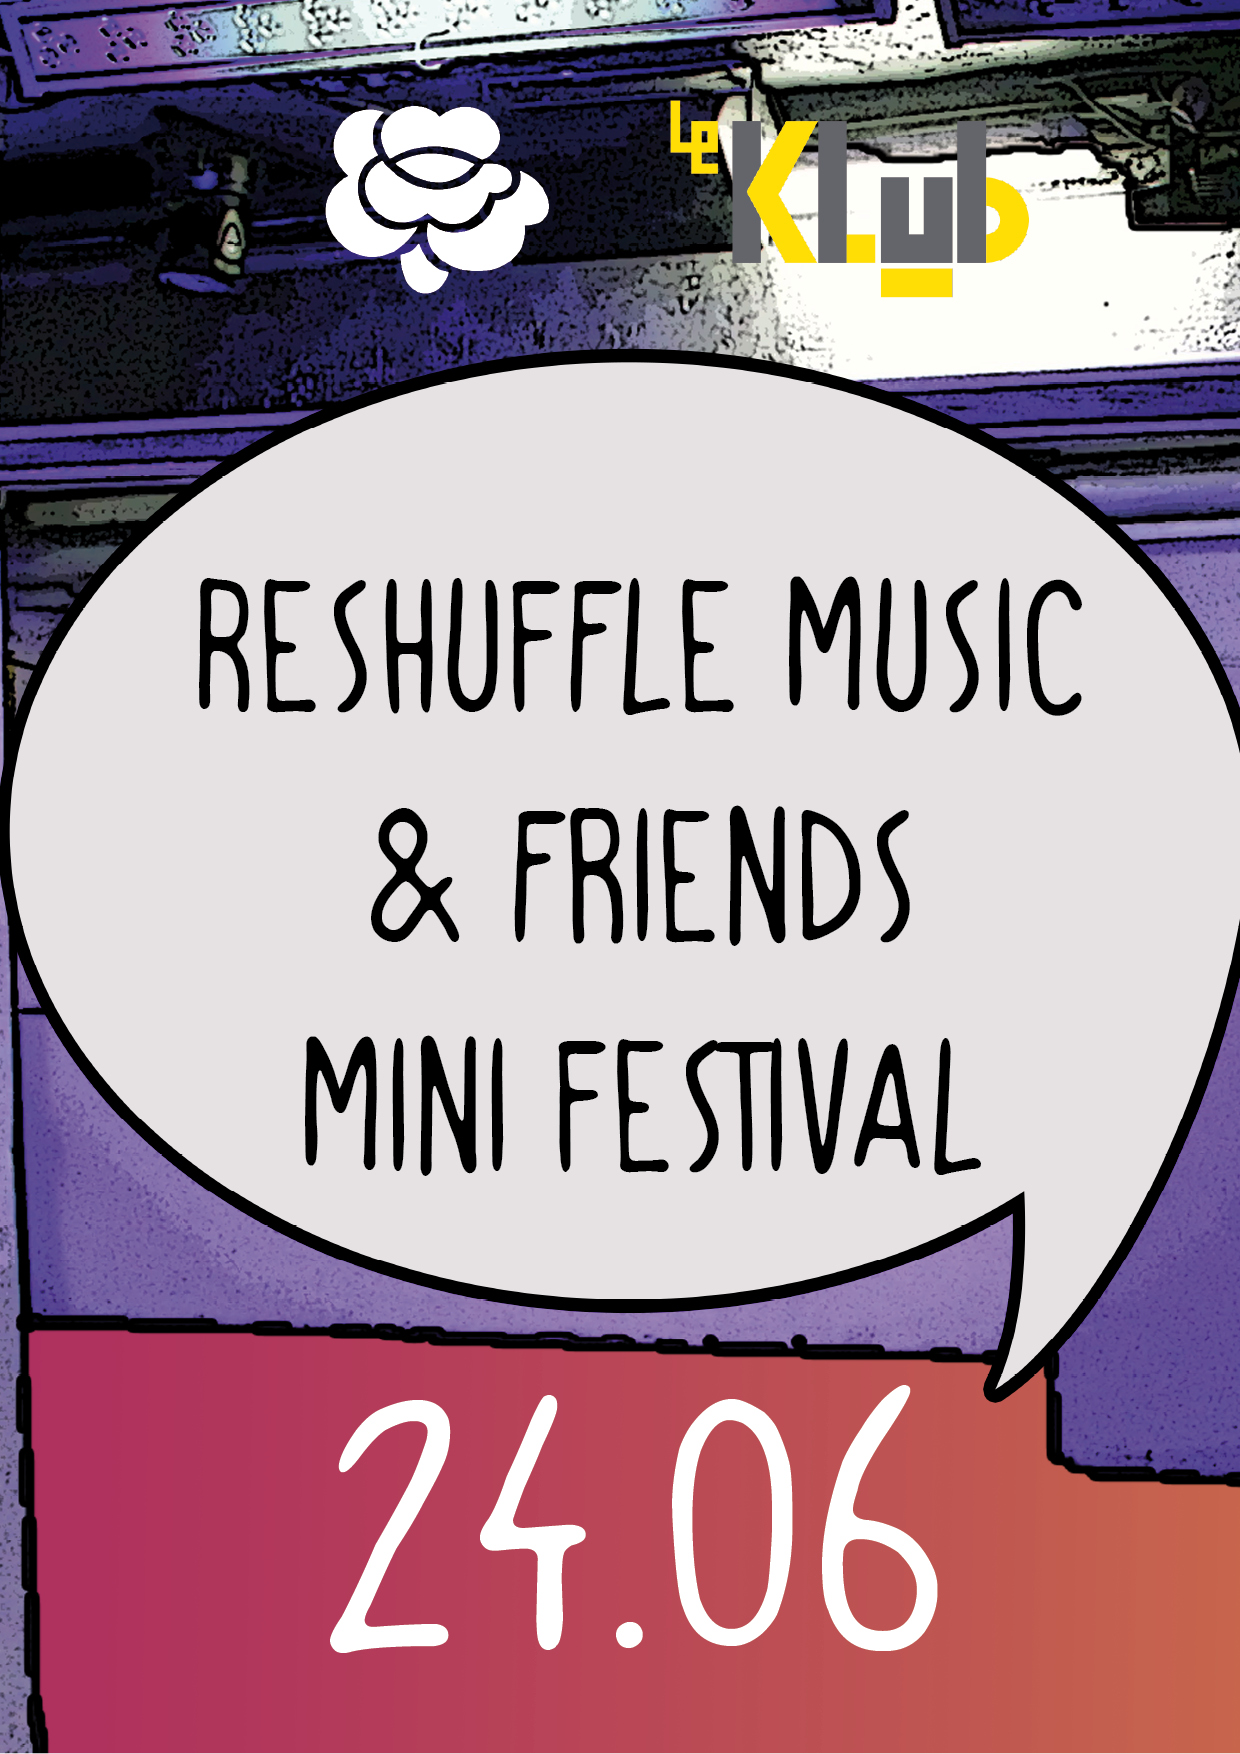 RESHUFFLE MUSIC & FRIENDS - MINI FESTIVAL